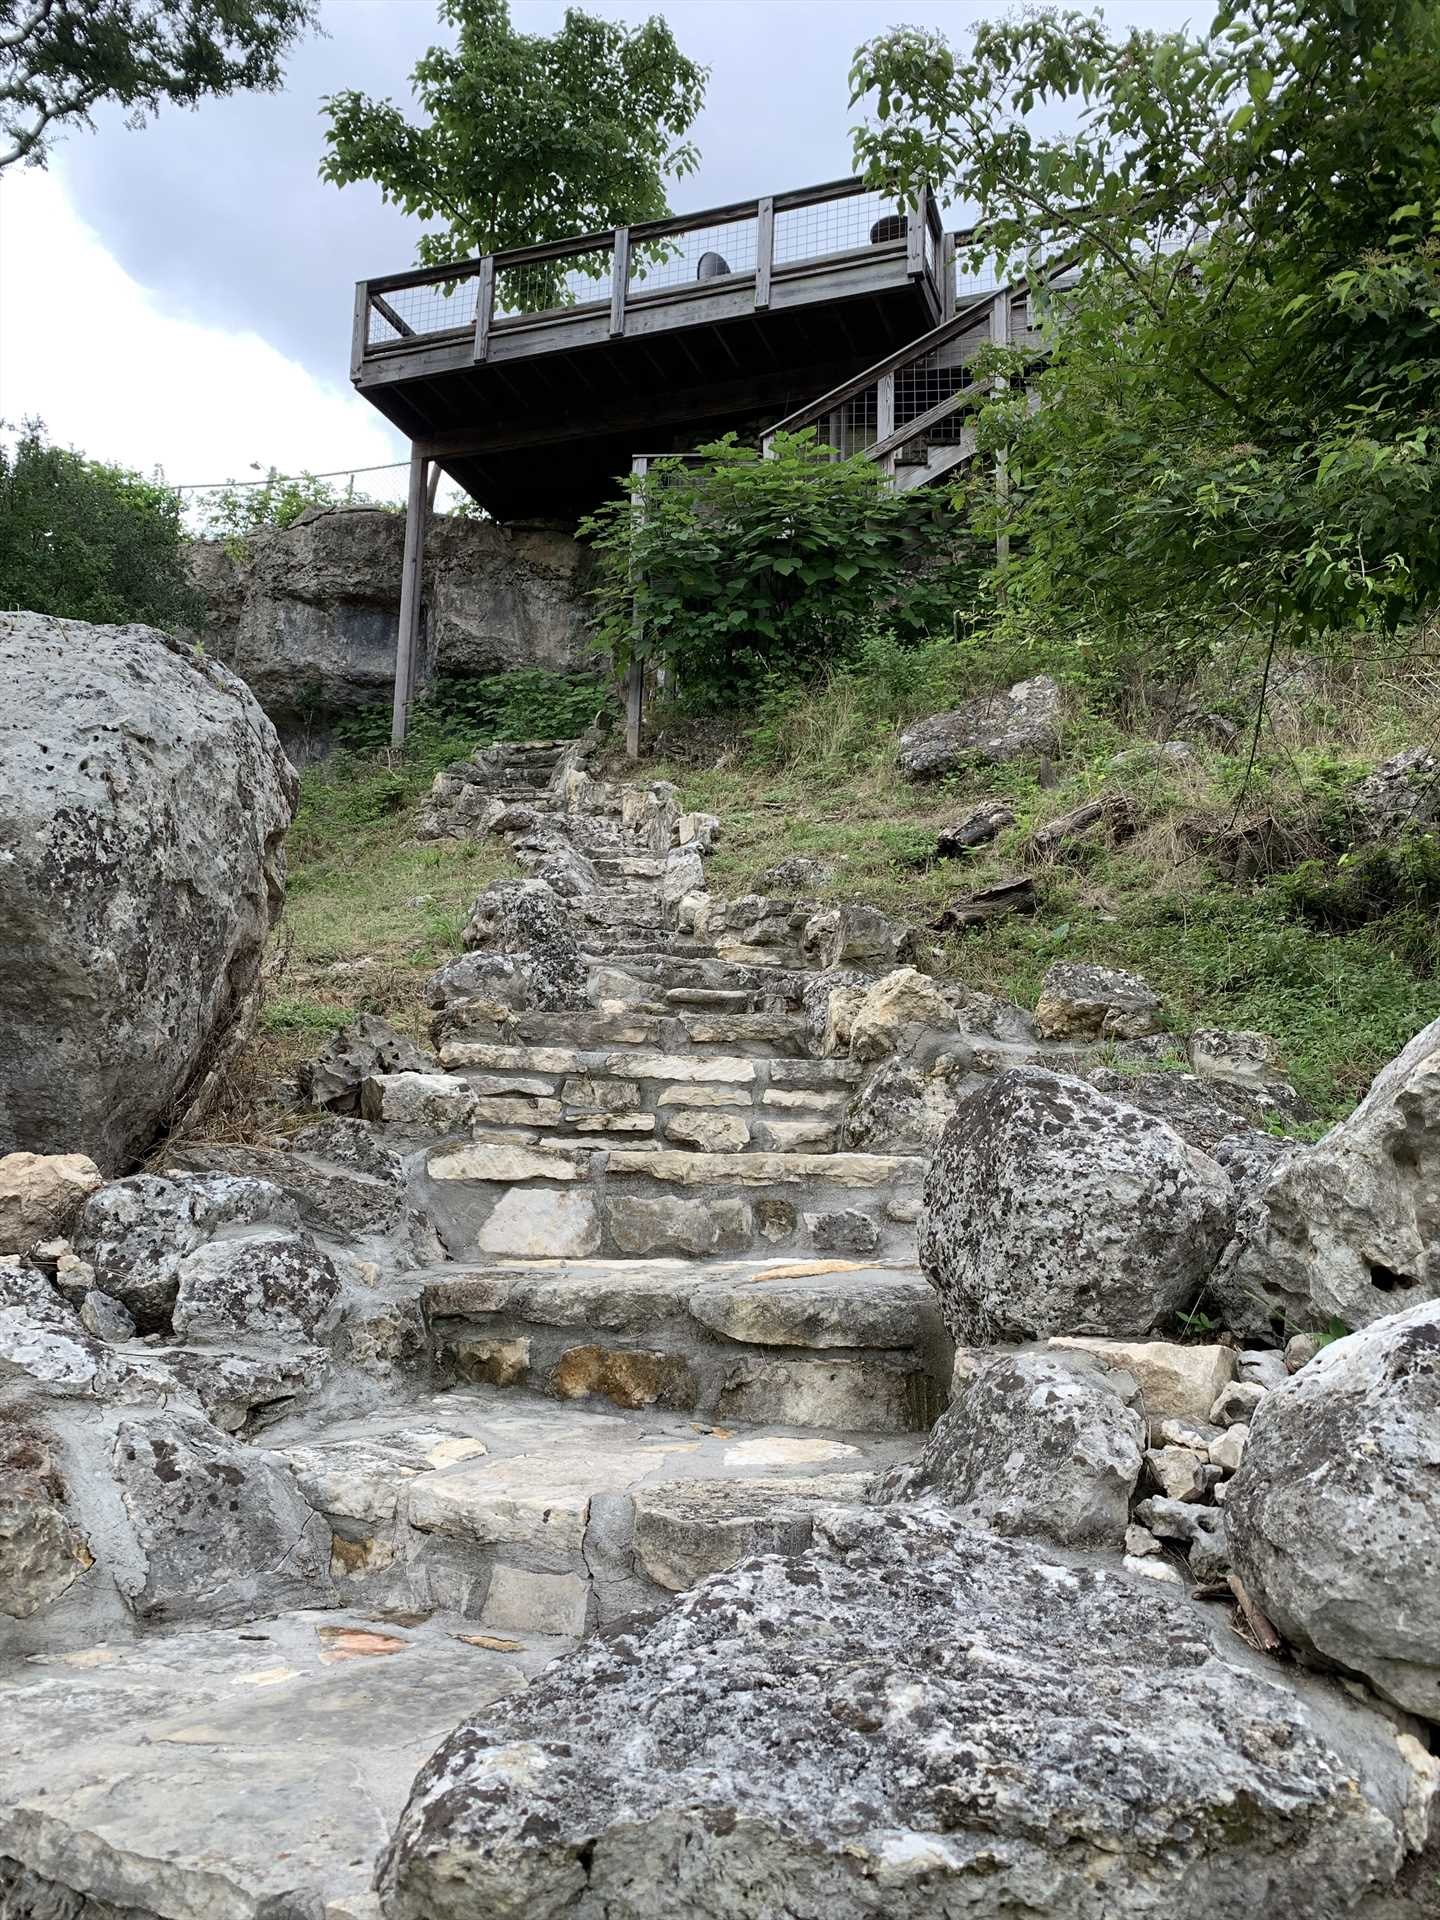 The retreat's perched on a ridge right above the river, which is easily accessed by the stone staircase out back.